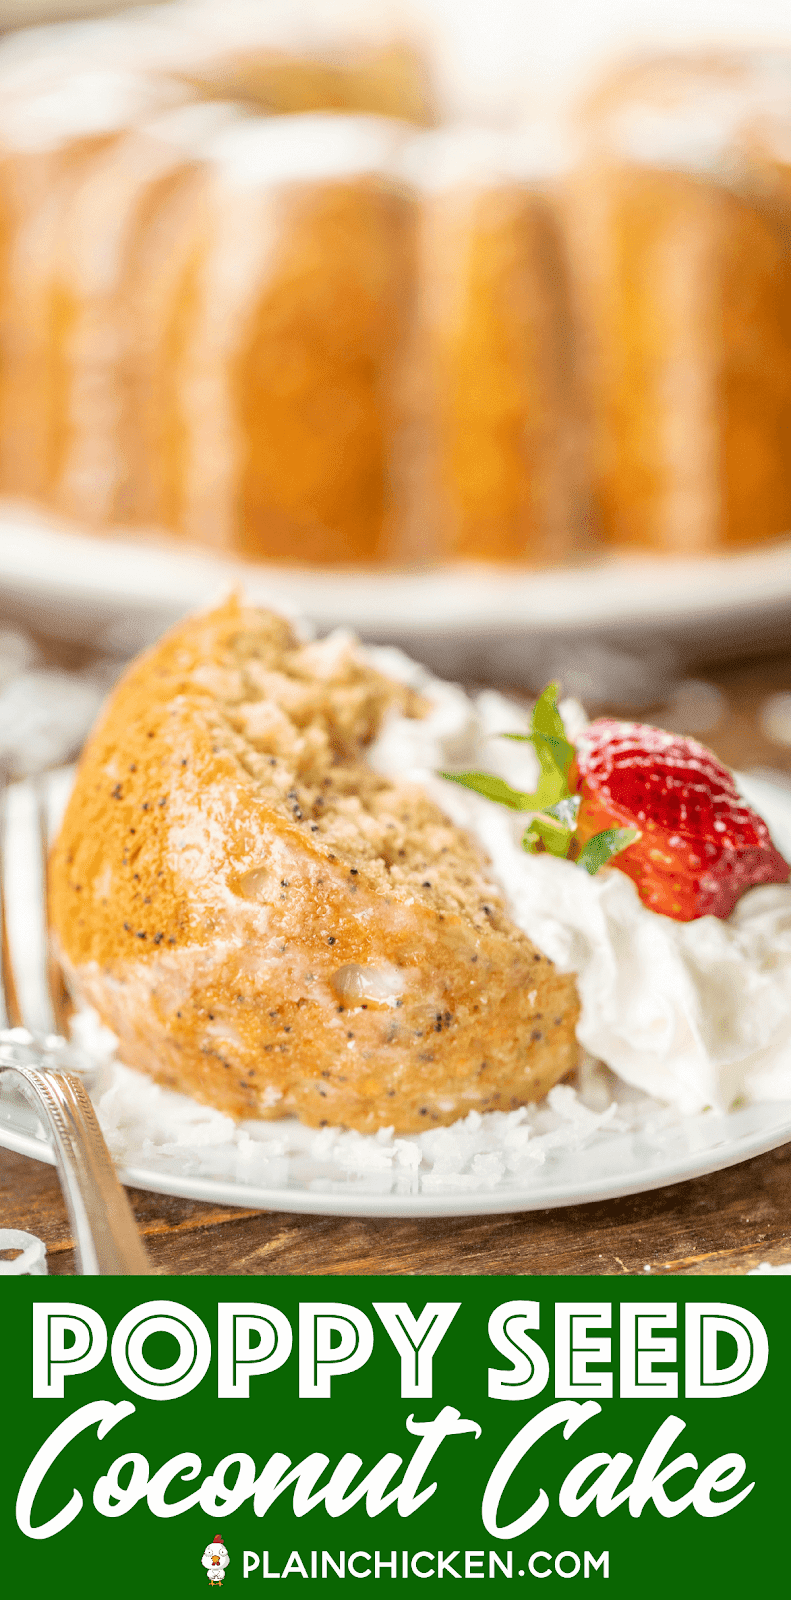 slice of poppy seed cake on a plate with whipped cream and strawberries